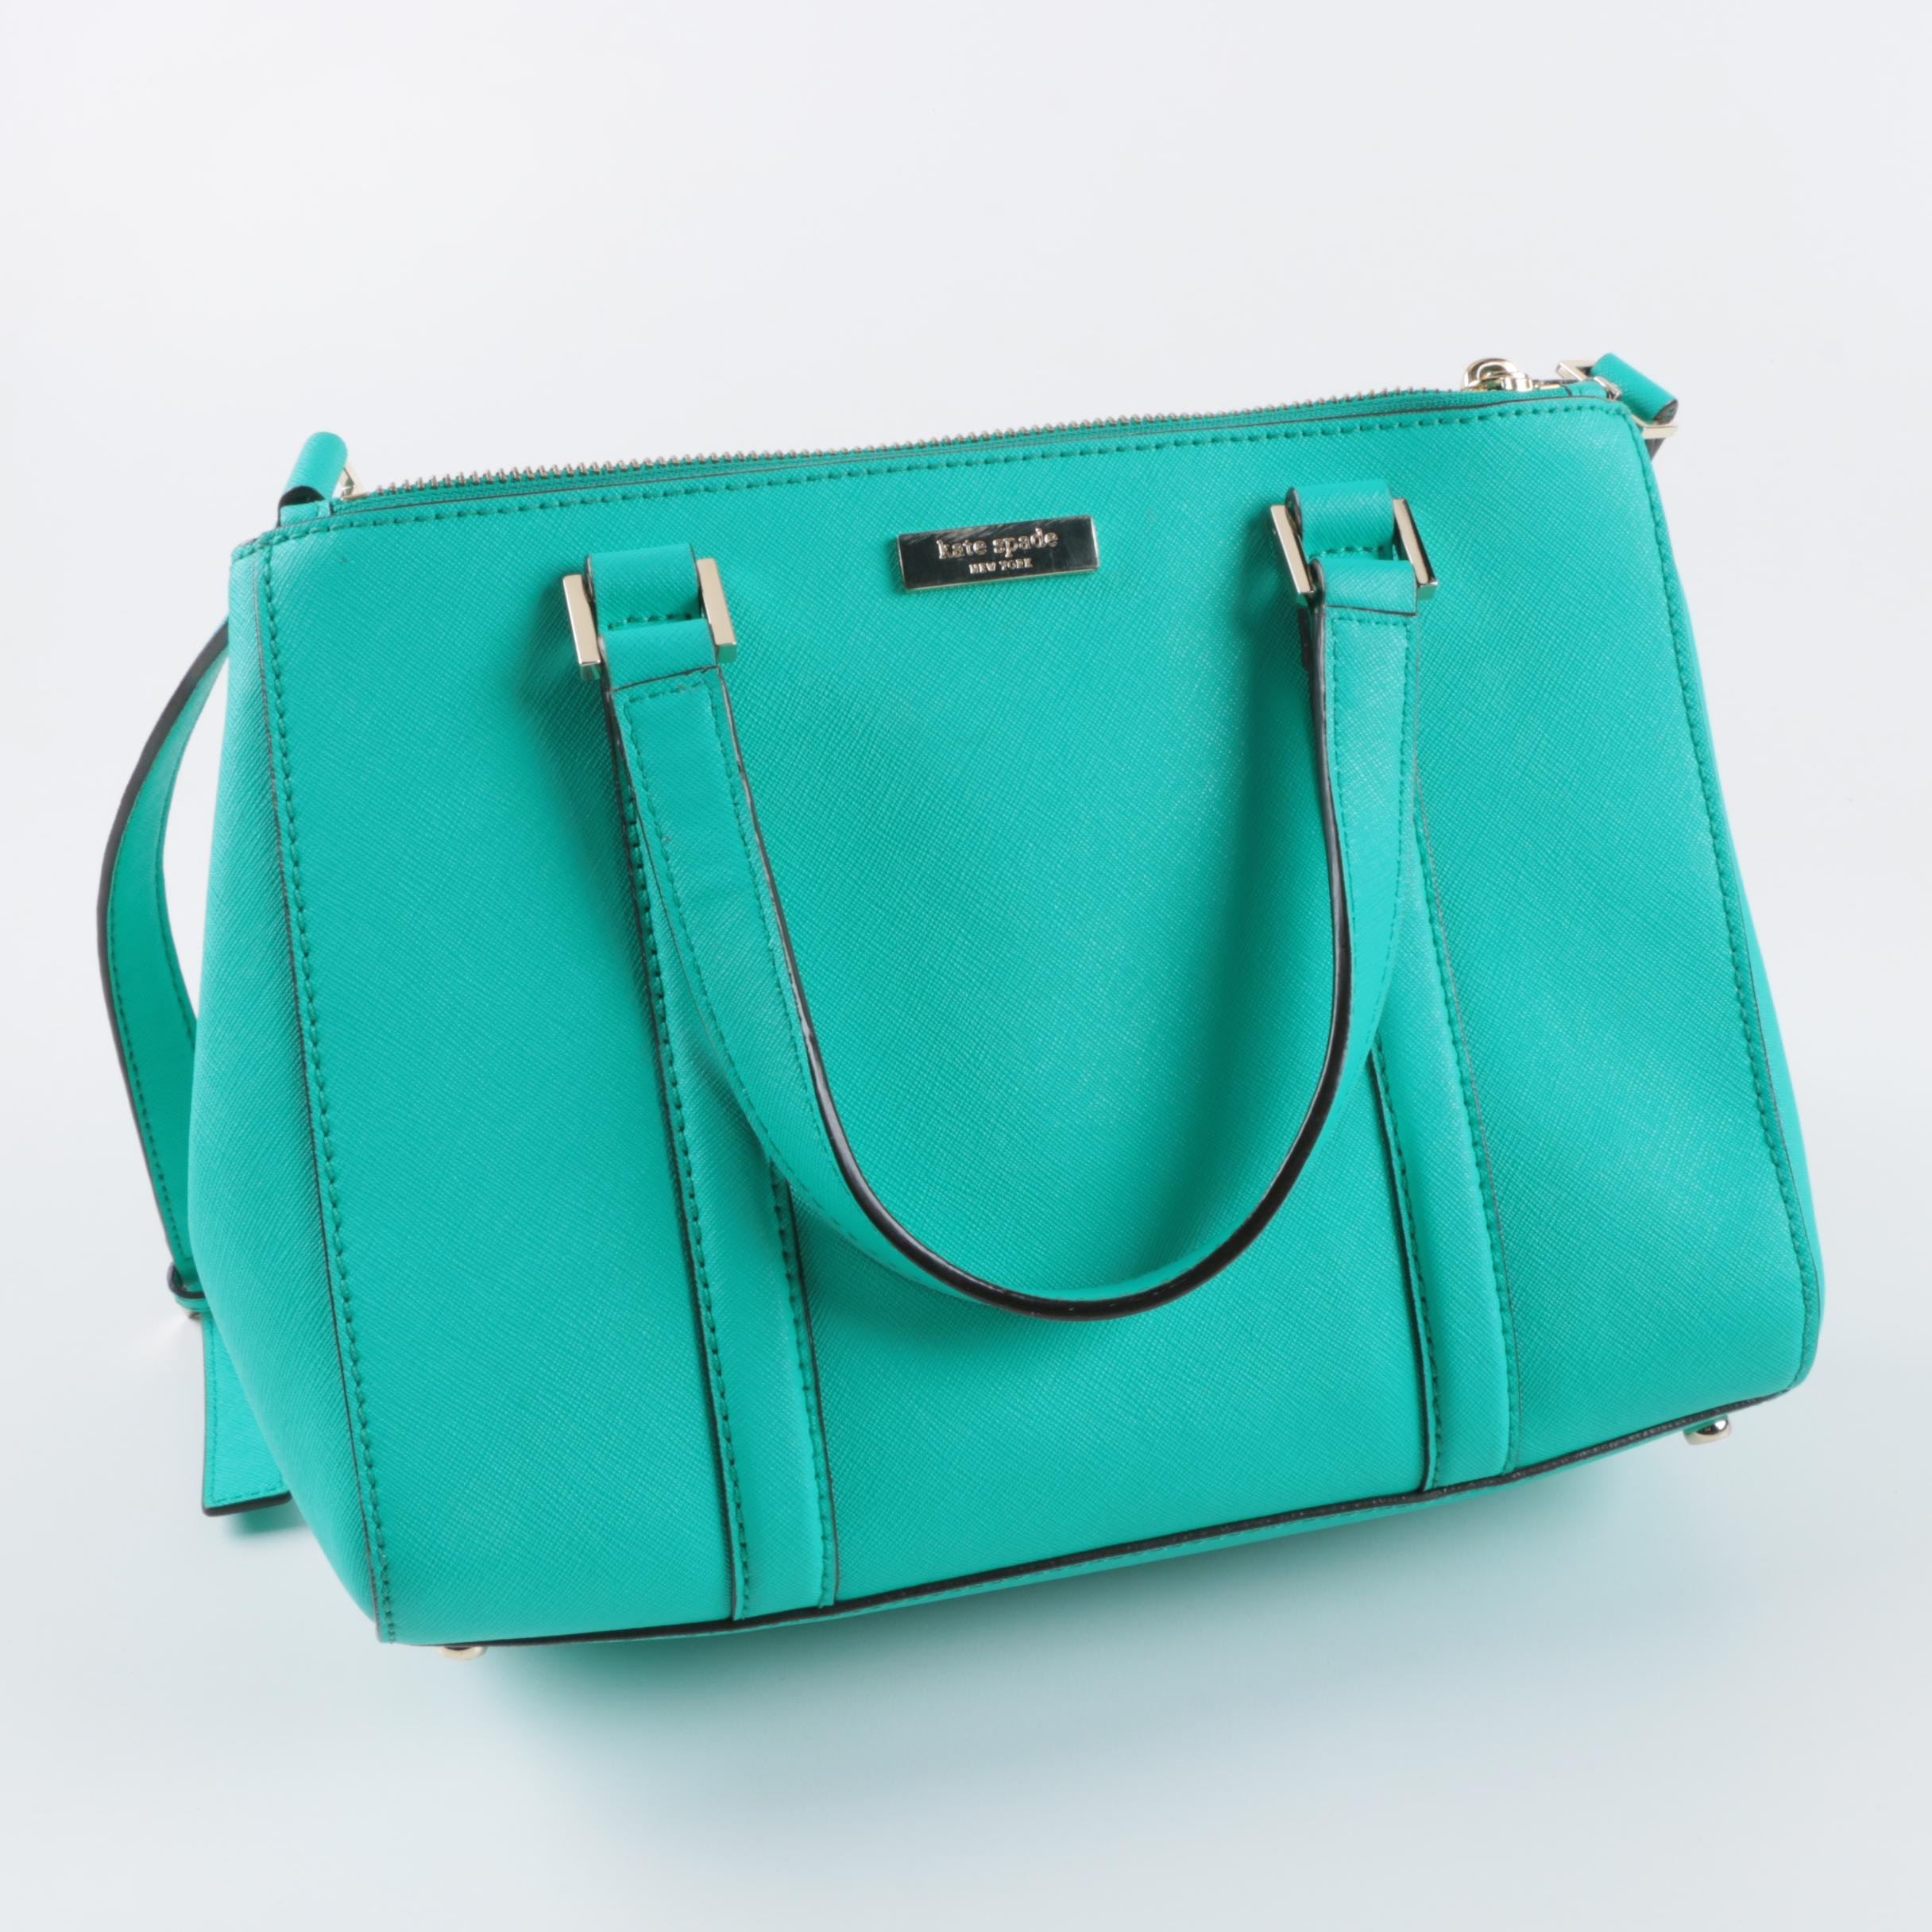 Kate Spade New York Turquoise Saffiano Leather Satchel